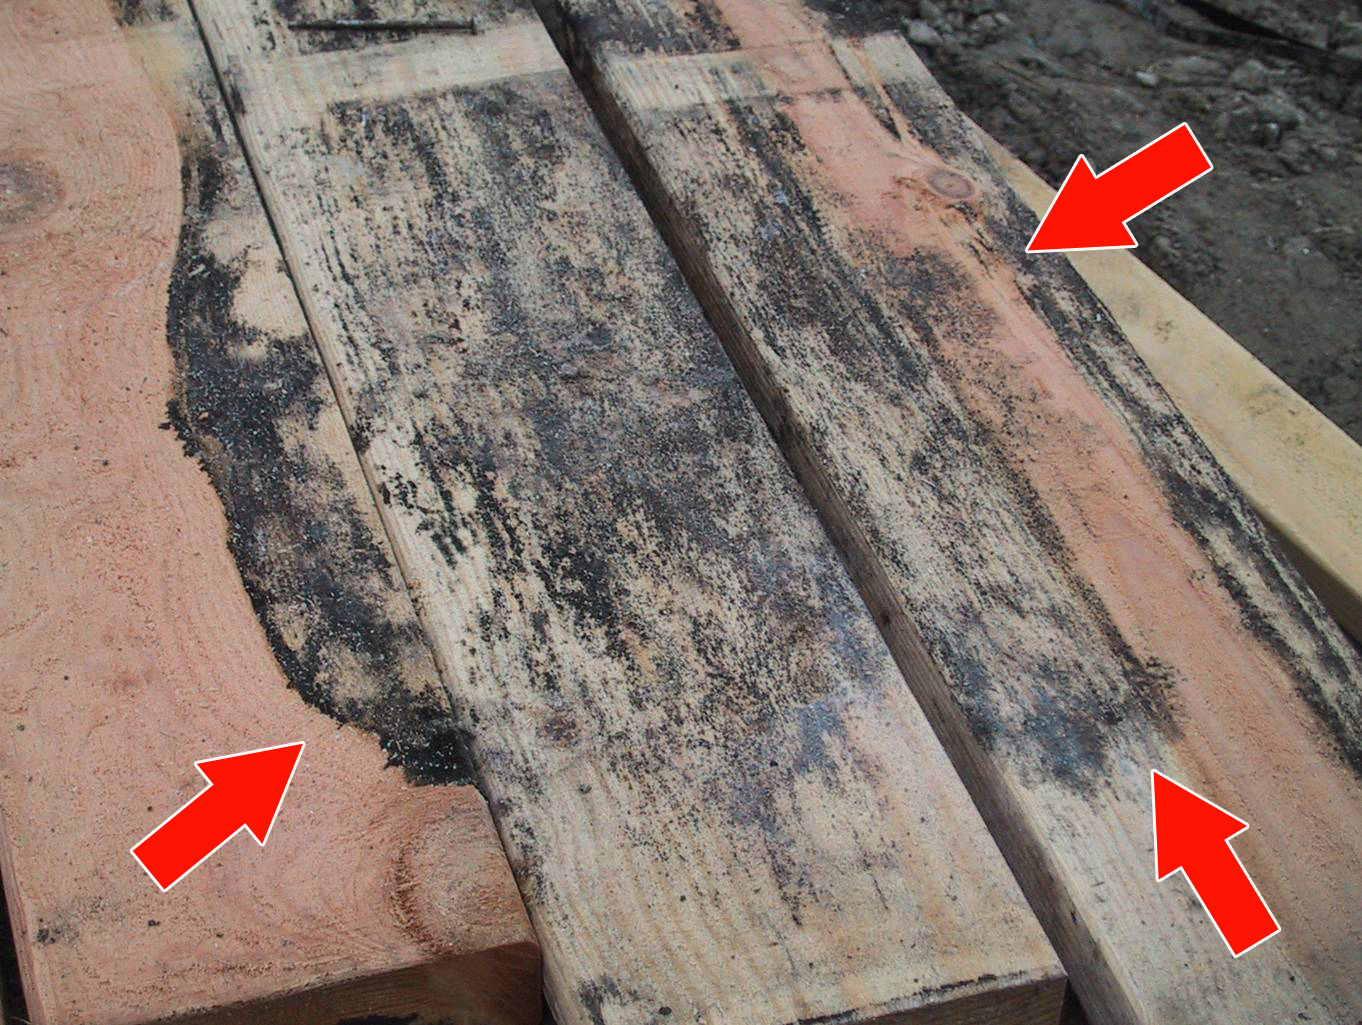 how to remove mold from wood how to remove mold from wood